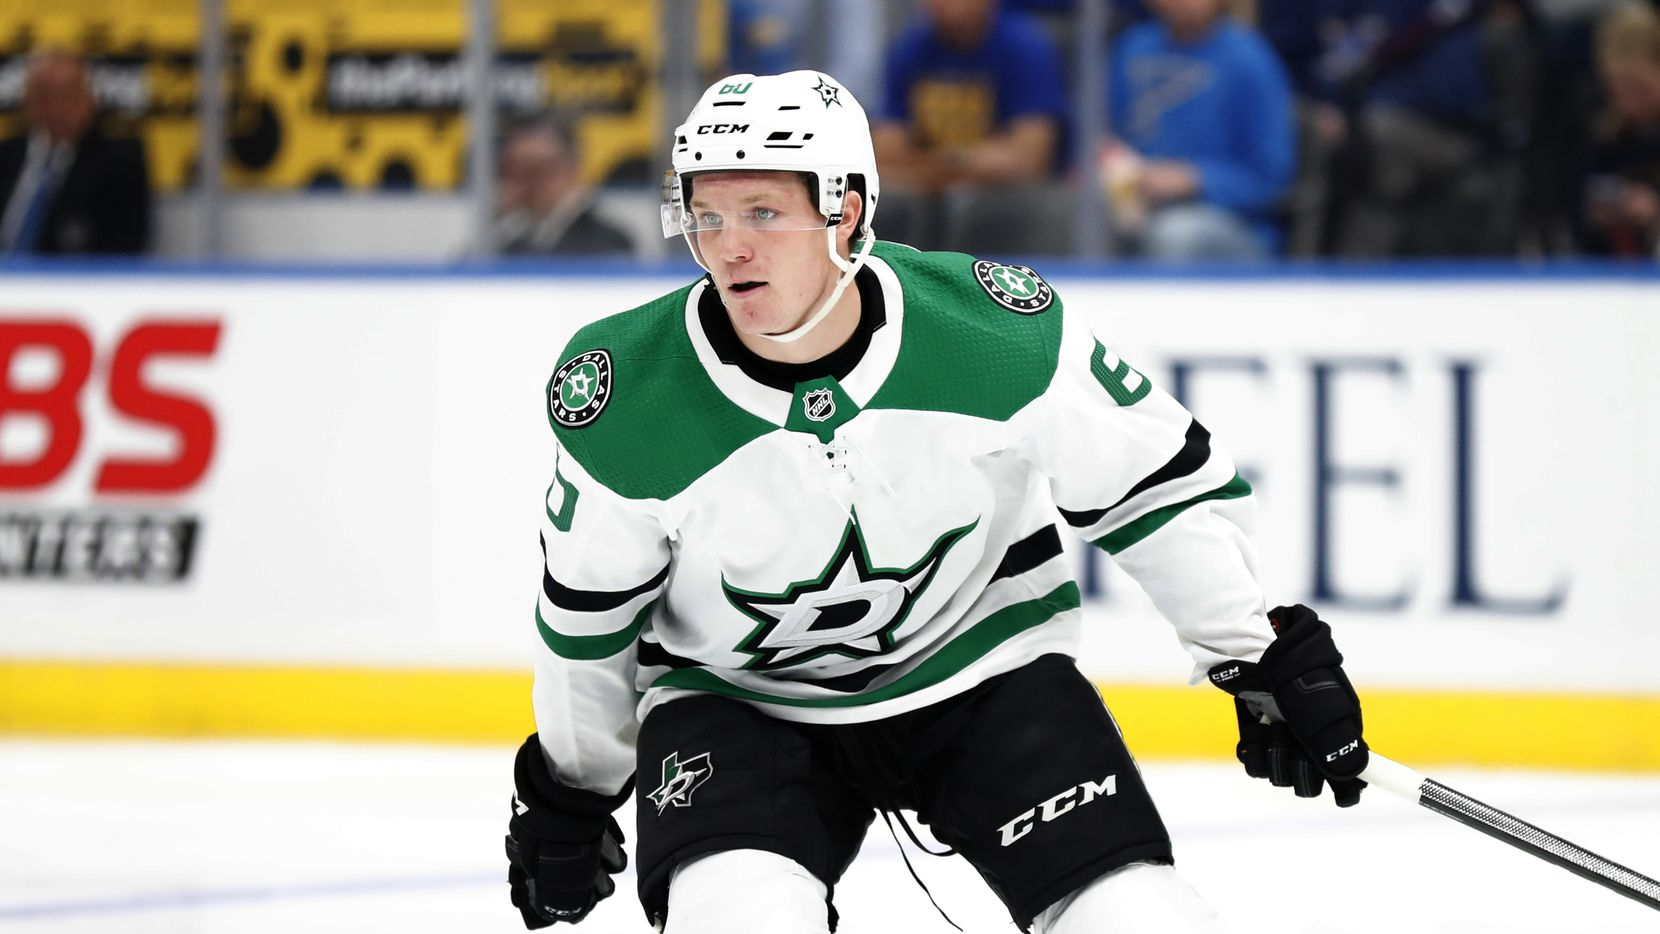 FILE - Stars center Ty Dellandrea skates during the first period of a preseason game against the Blues on Tuesday, Sept. 24, 2019, in St. Louis.